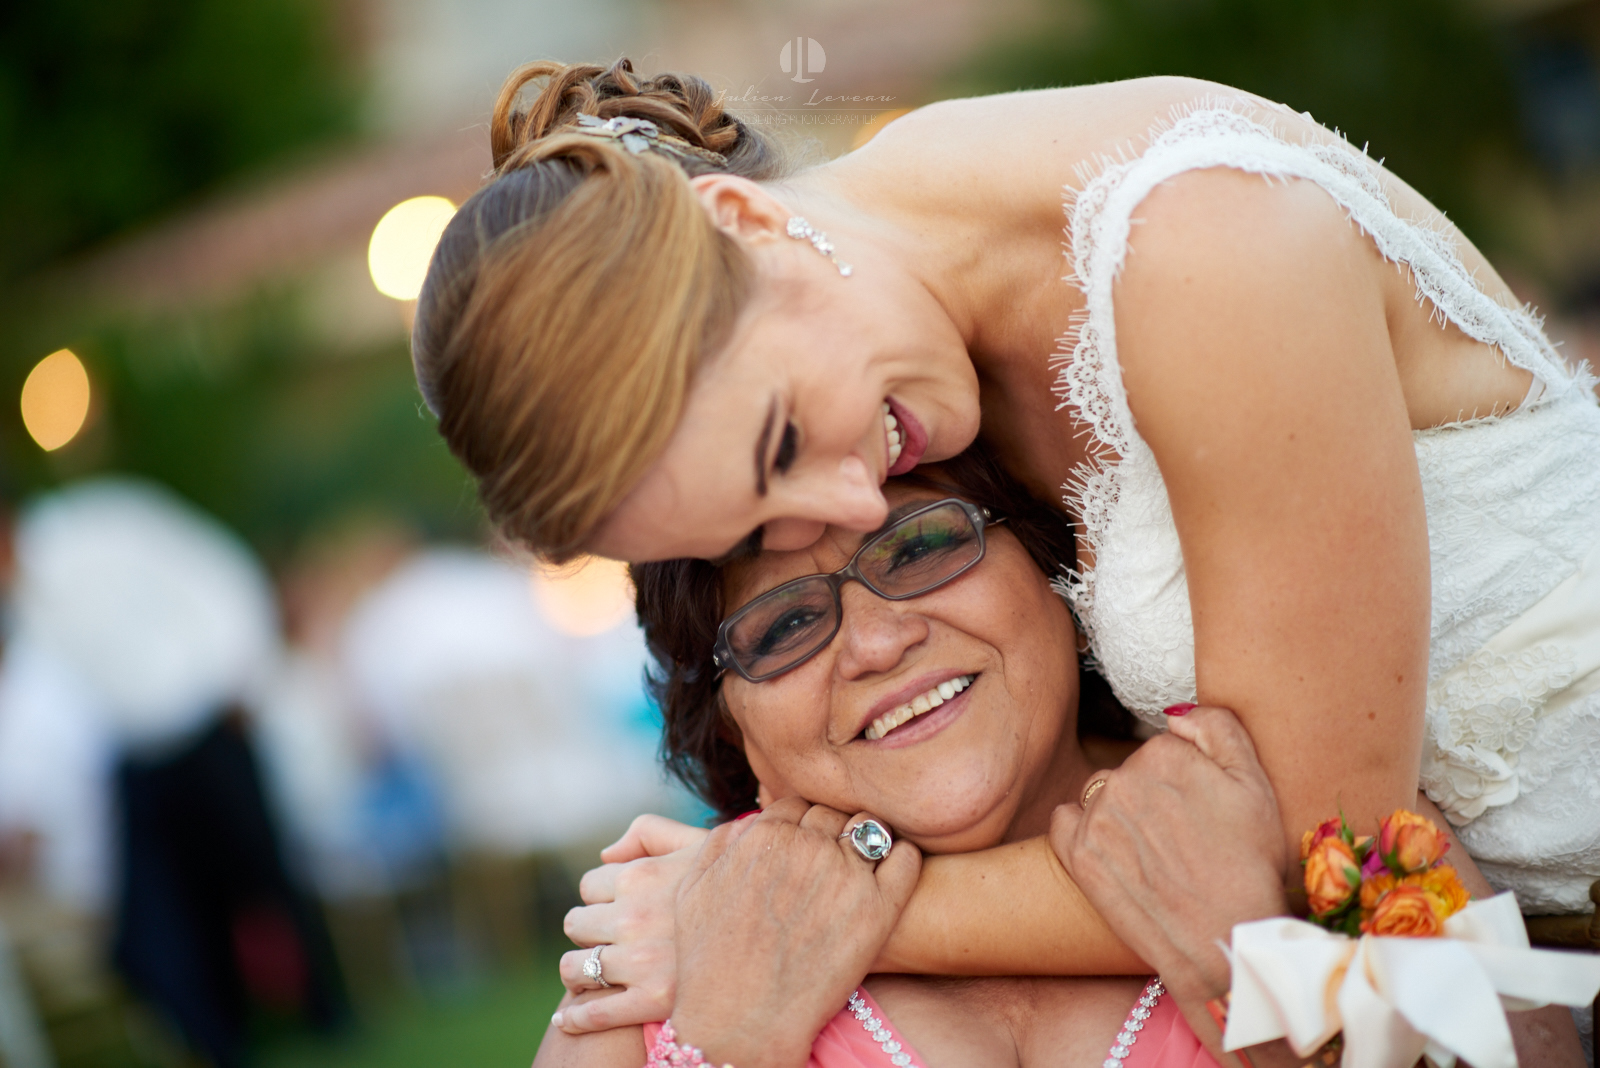 Wedding Photography in Bucerias- Bride and her mother in law